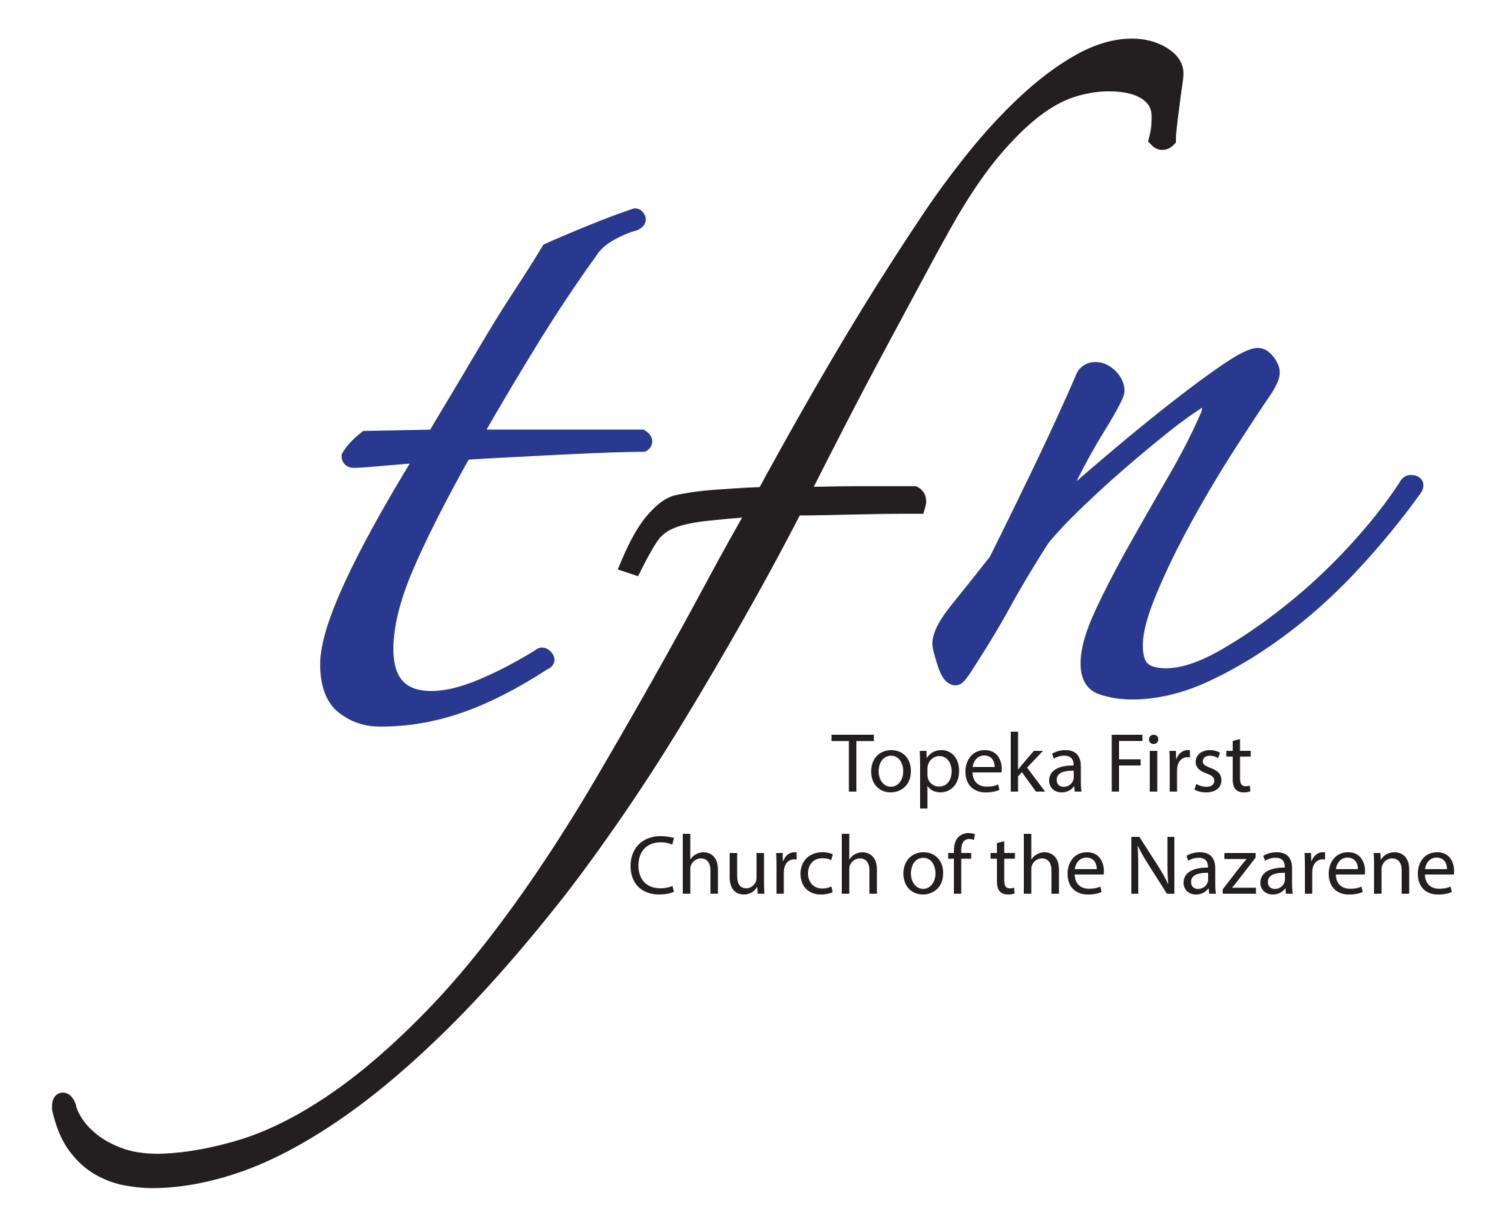 Topeka First Nazarene